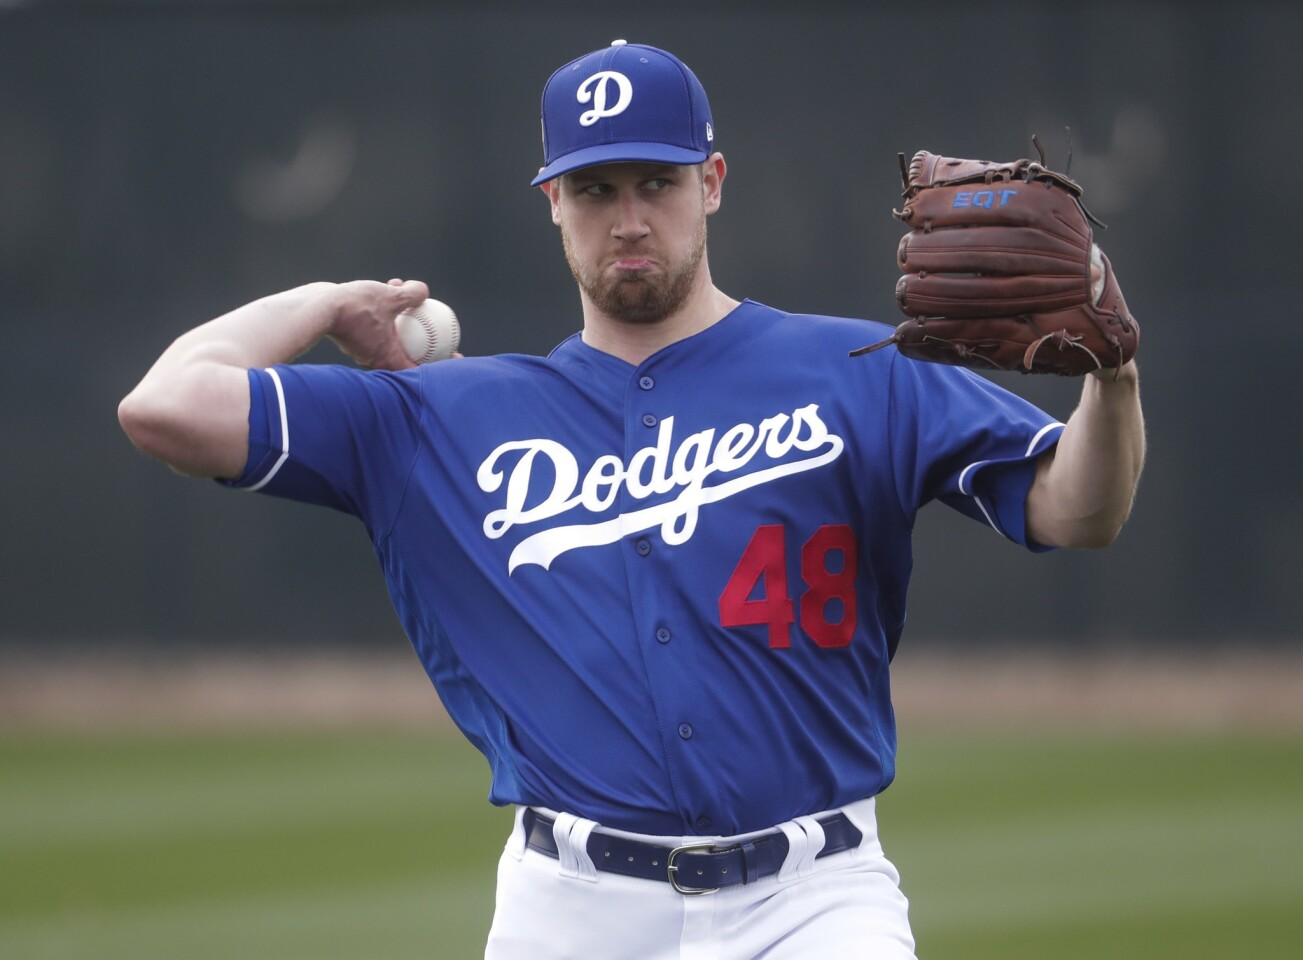 Los Angeles Dodgers' Brock Stewart throws during a spring training baseball workout Wednesday, Feb. 13, 2019, in Glendale, Ariz. (AP Photo/Morry Gash)